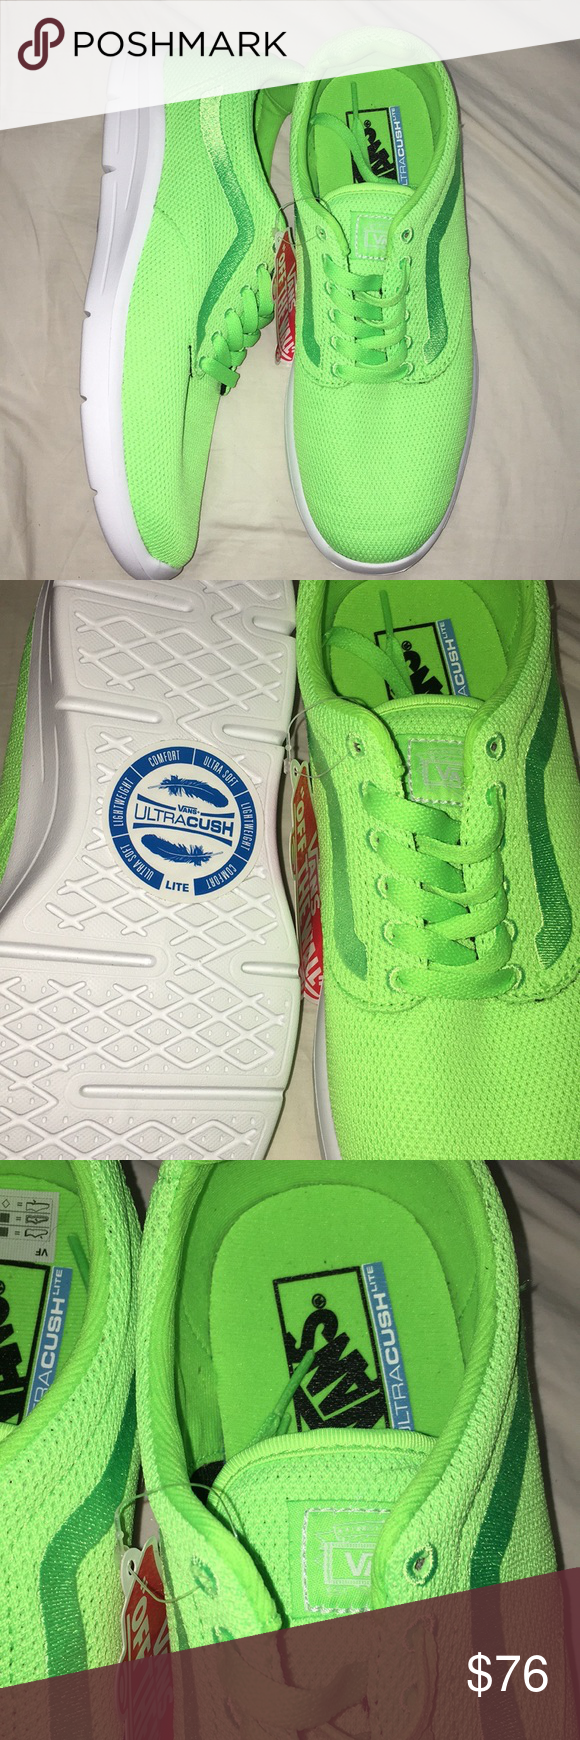 11ecf1906caaf5 ISO 1.5 mesh Vans ISO 1.5 mesh green gecko green neon Vans. Old skool  design. Great athletic shoes for running or sports. Ultra Cush lite.